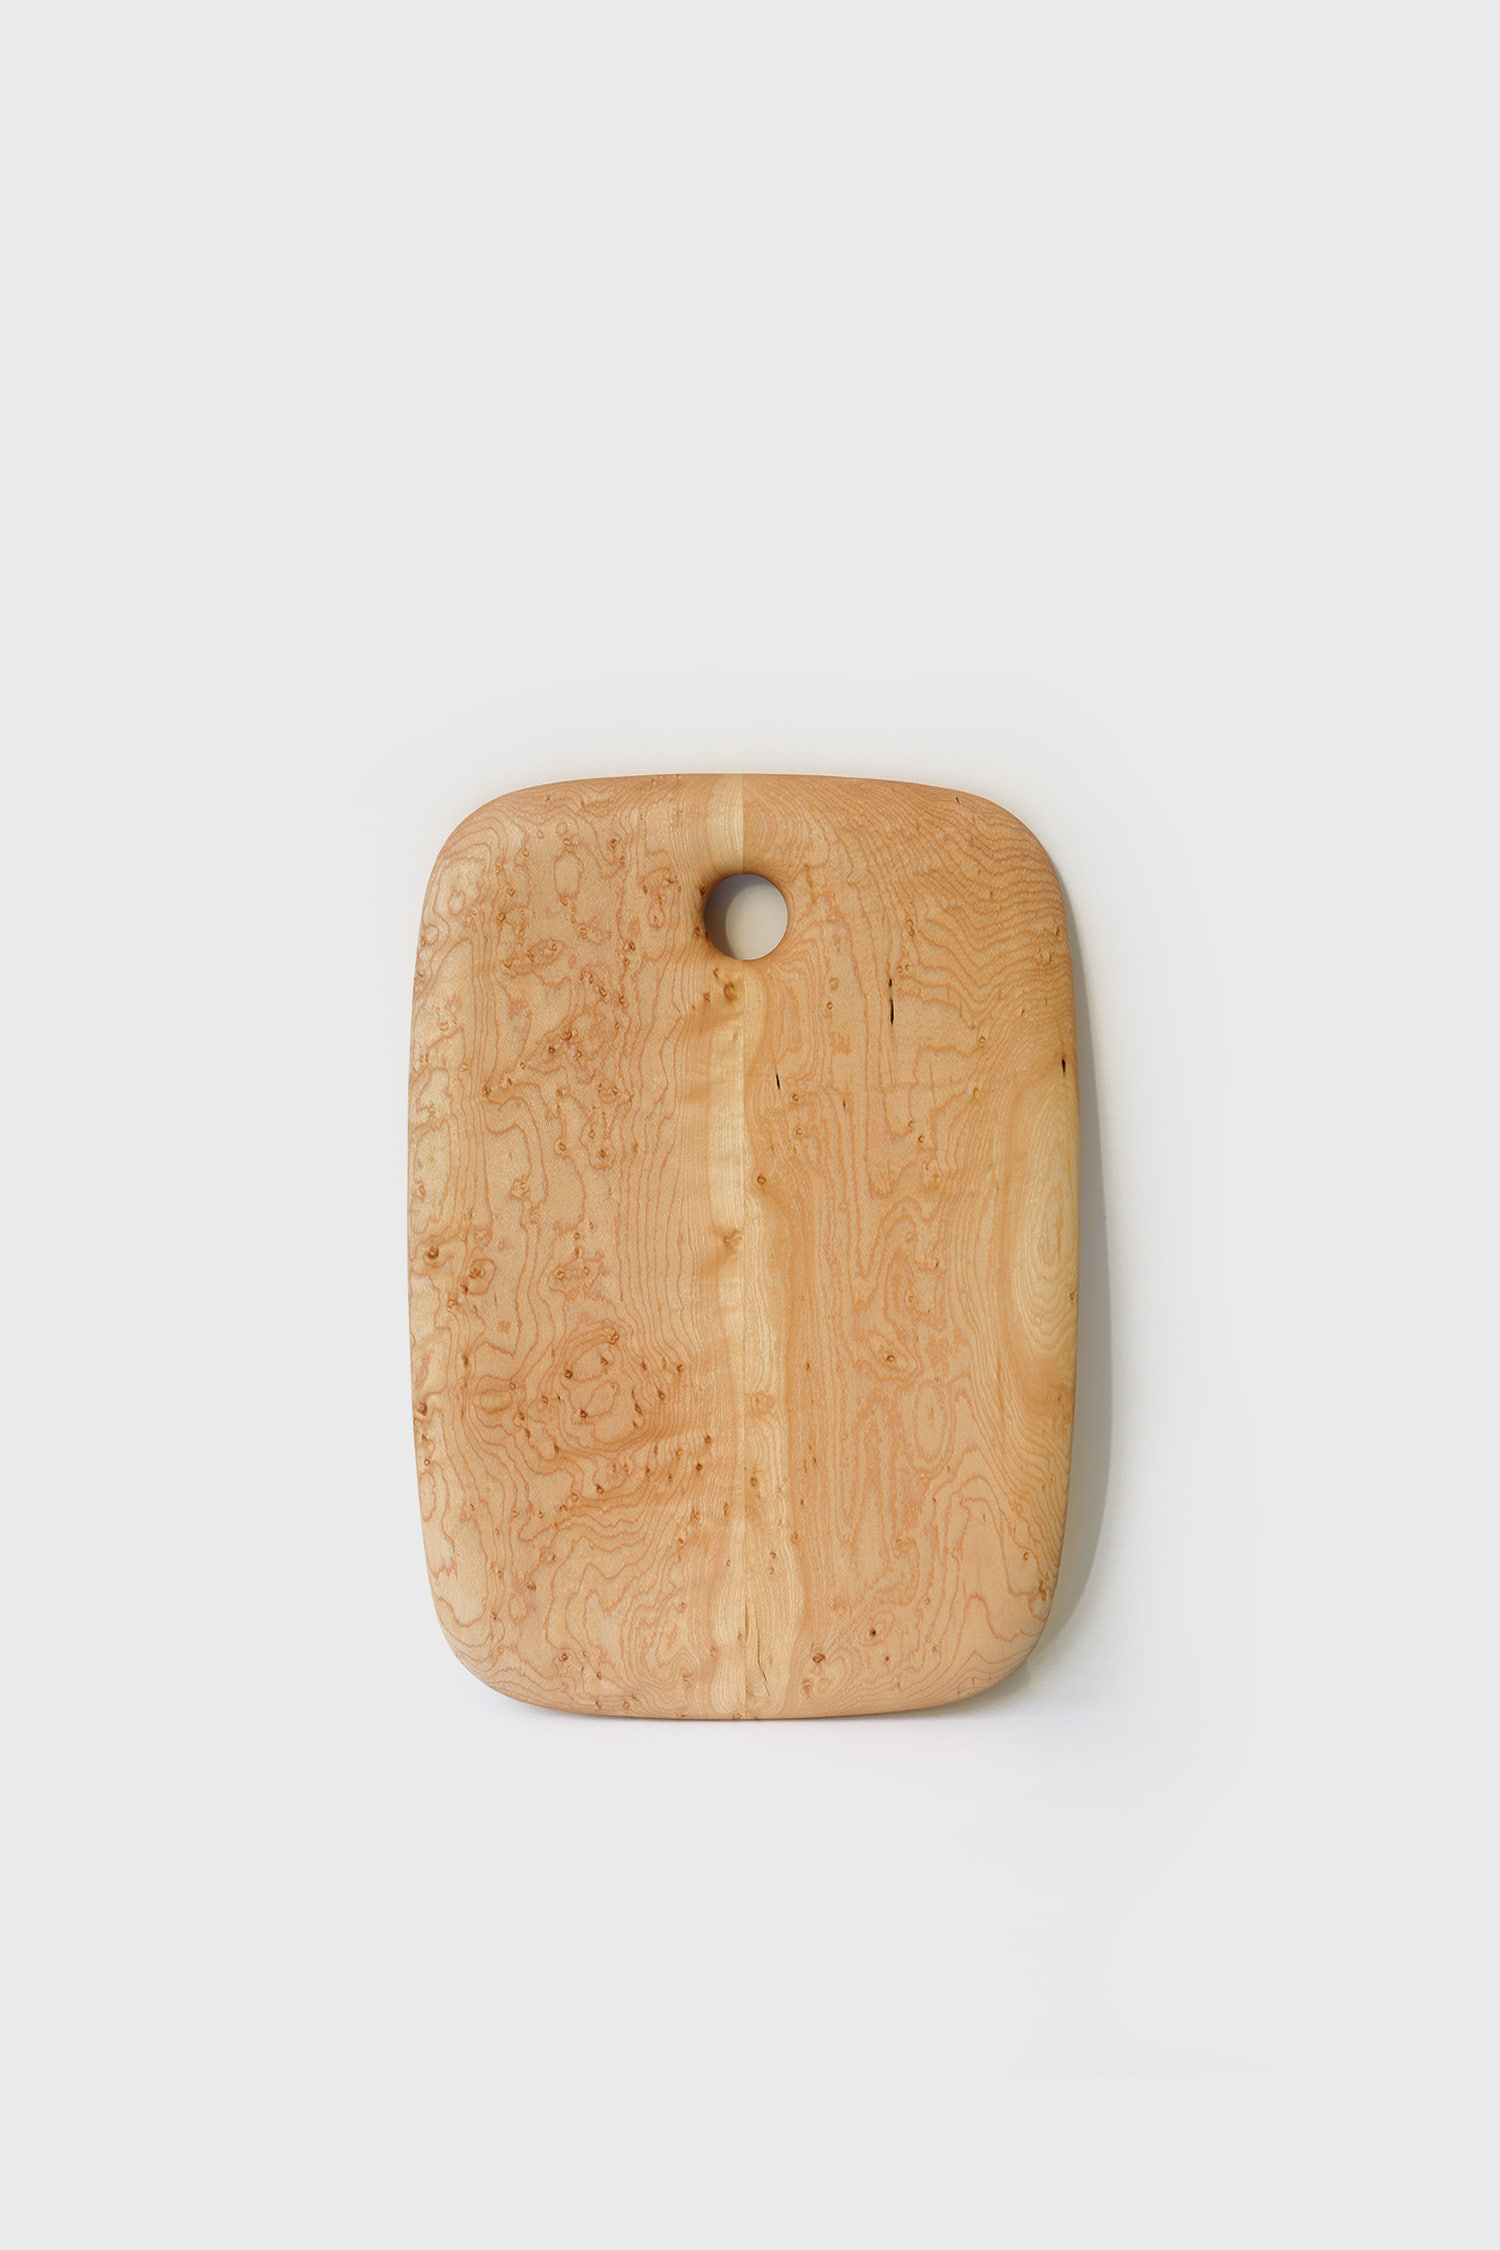 04 Bird's Eye Maple Tray